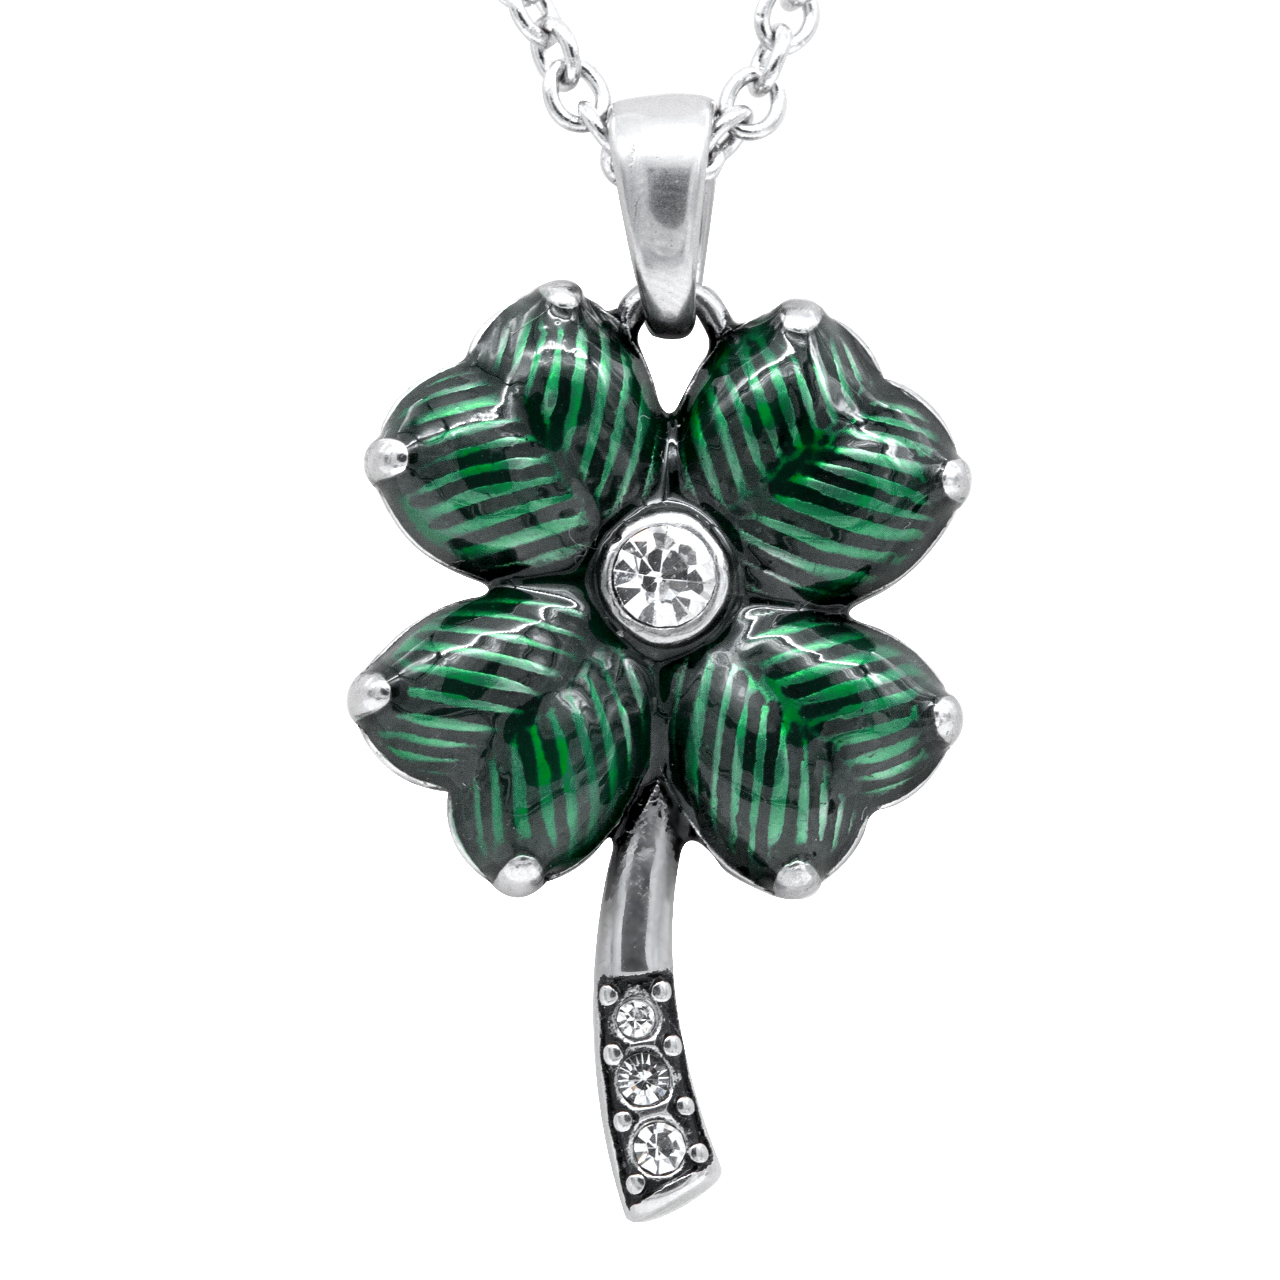 Four Leaf Clover with Swarovski Crystals Necklace